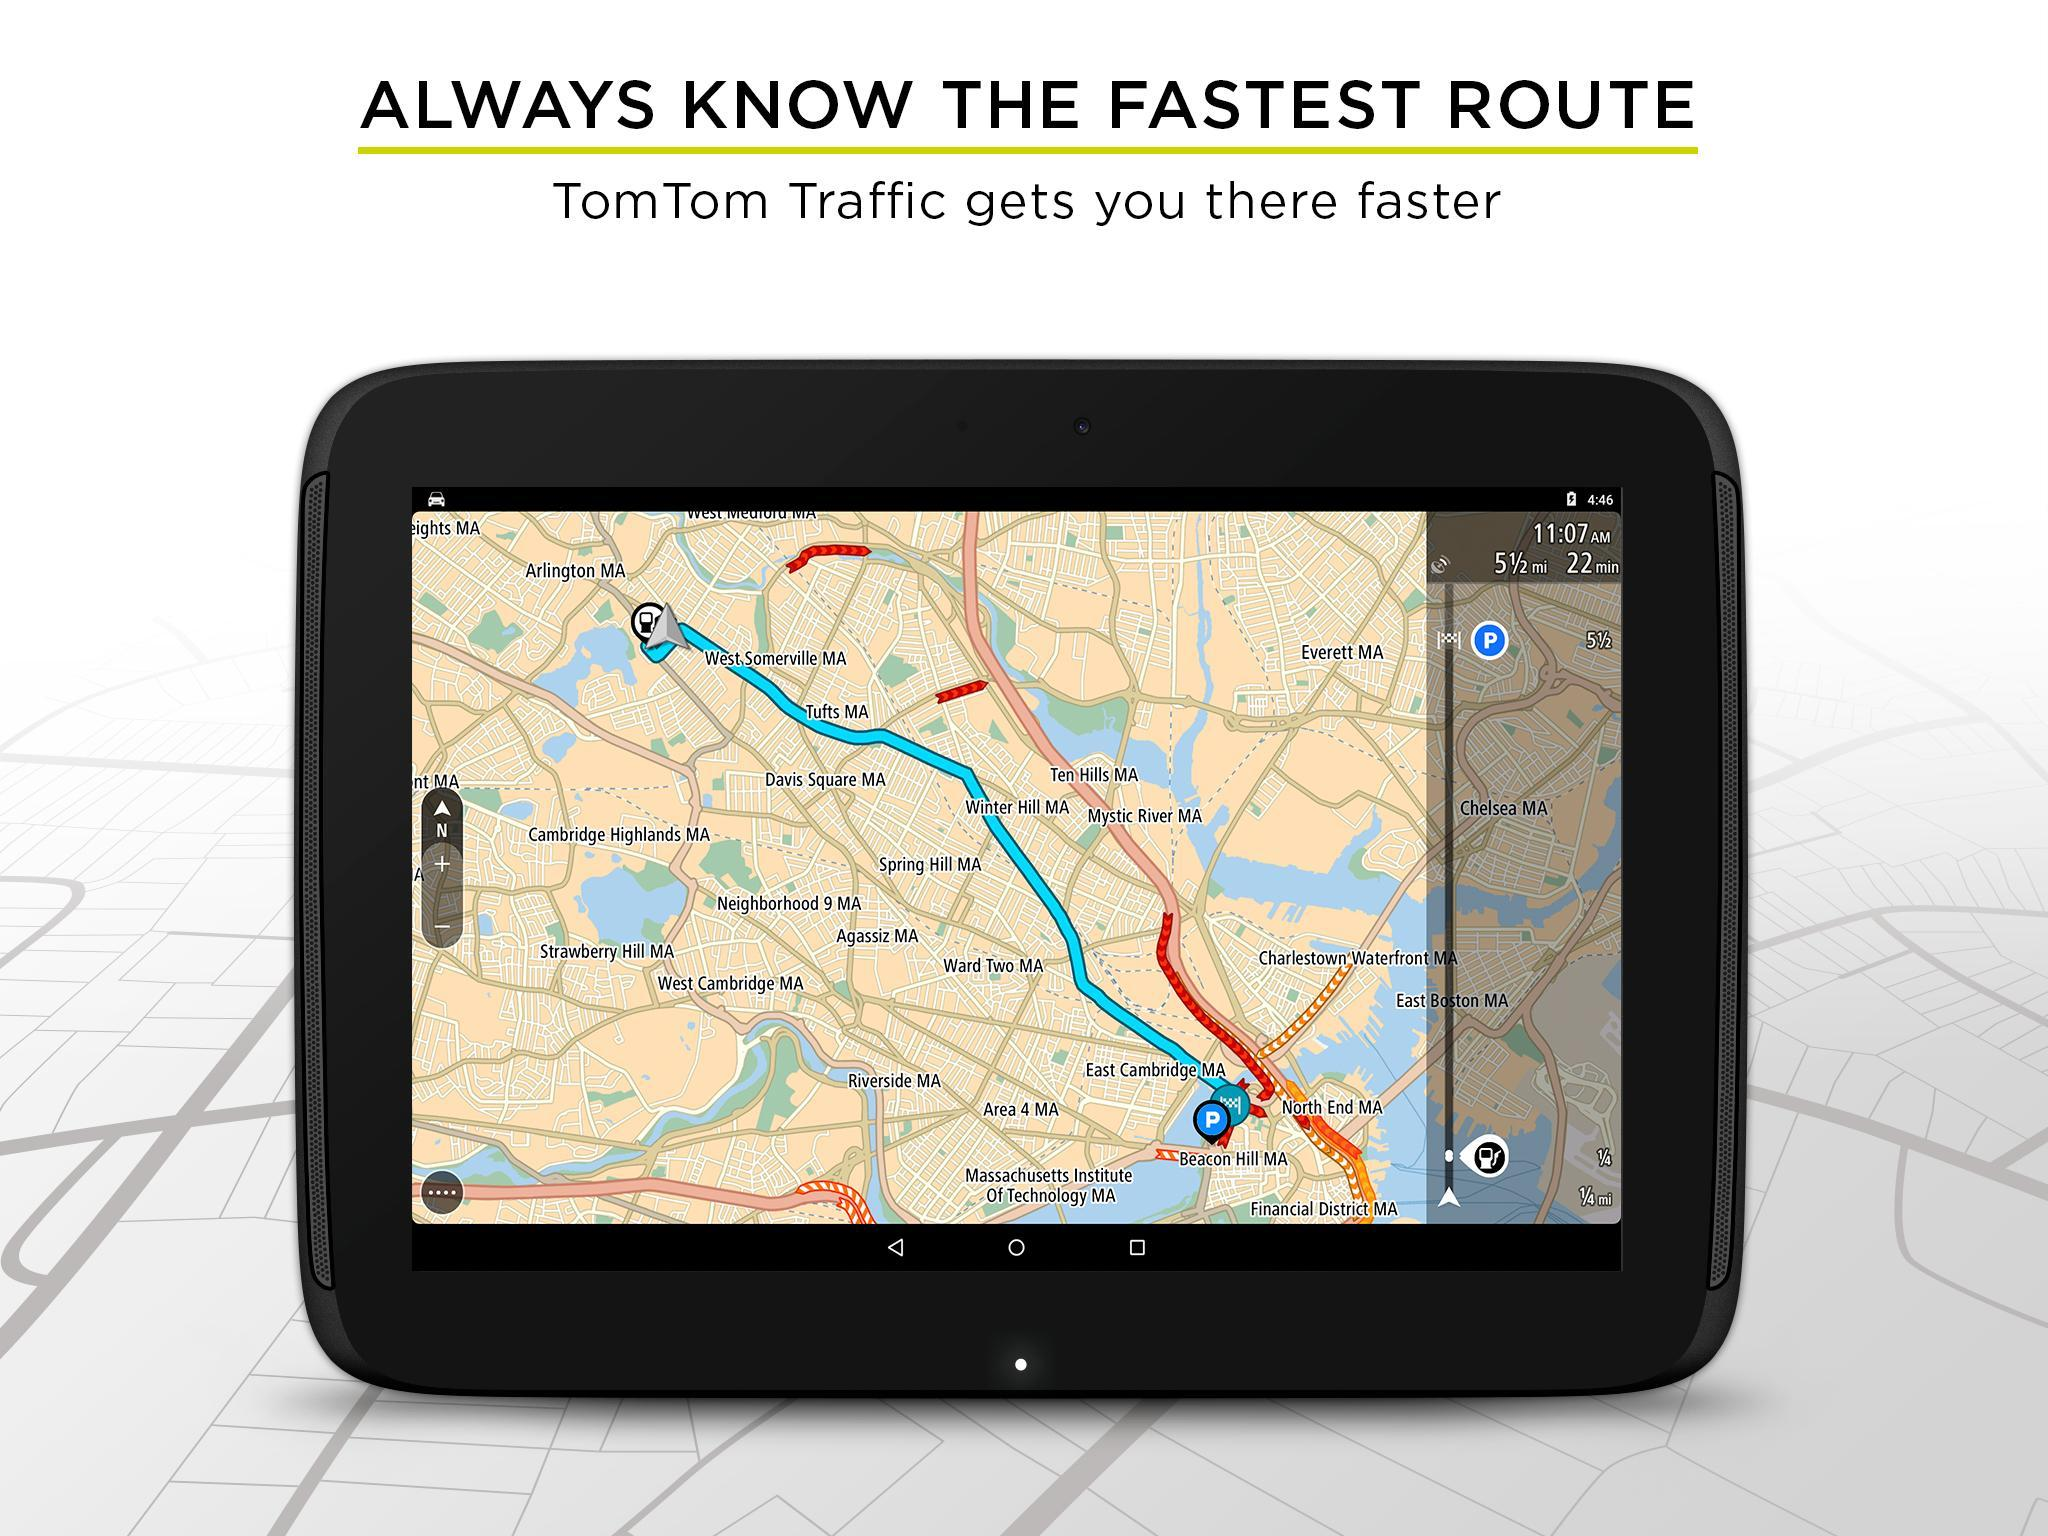 TomTom GPS Navigation - Live Traffic Alerts & Maps 2.0.4 Screenshot 8